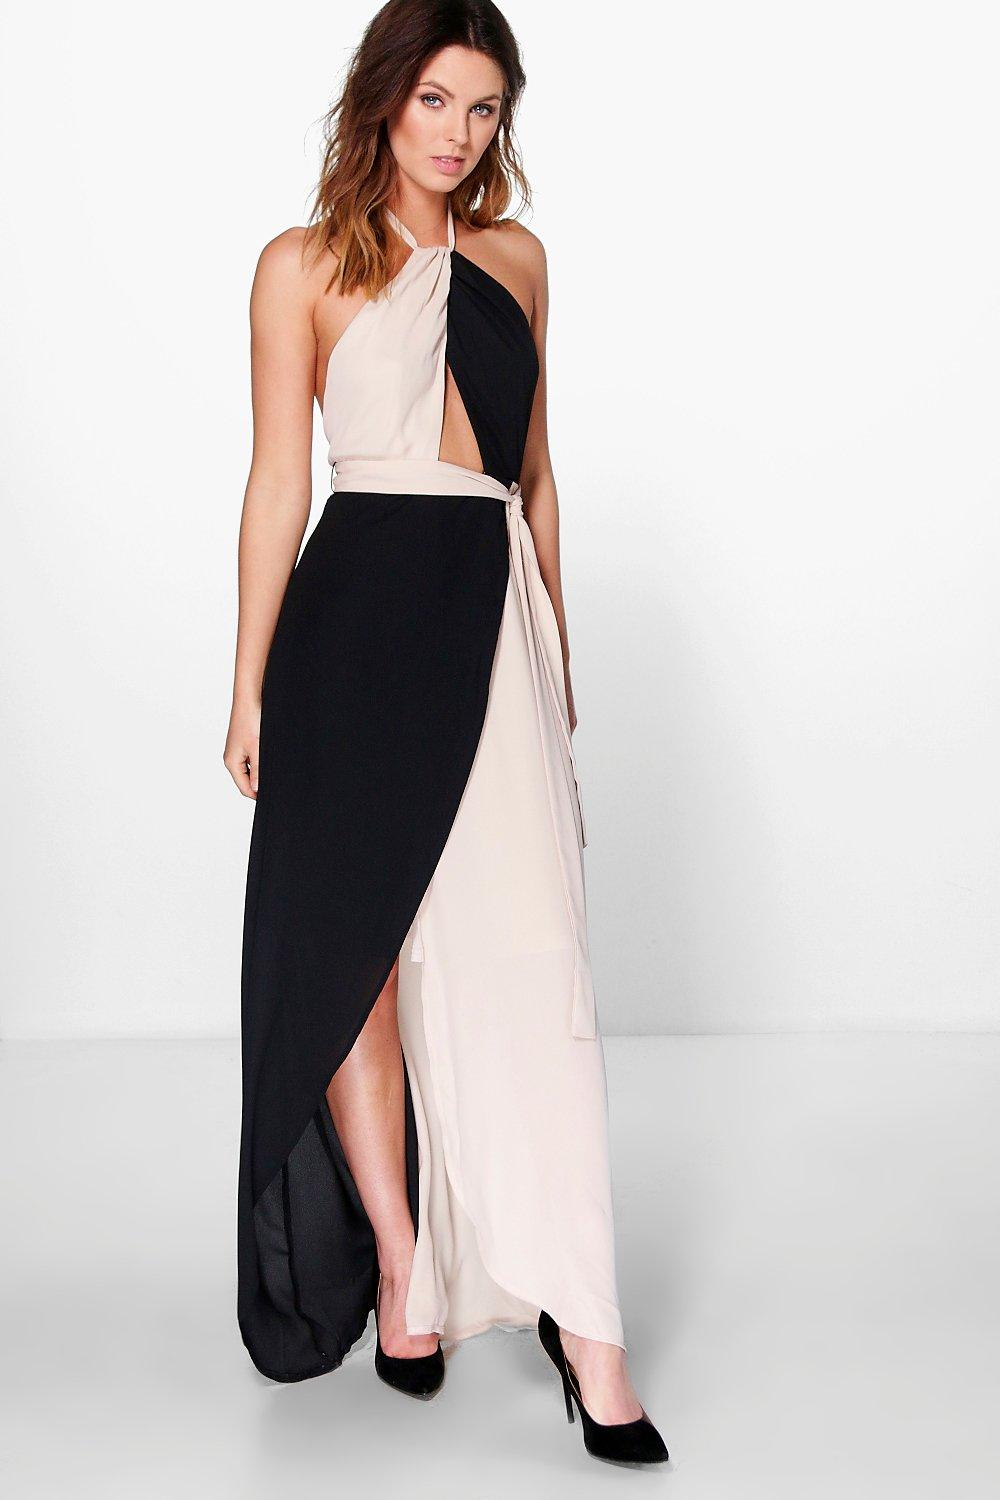 Kicho Contrast Colour Halter Chiffon Maxi Dress